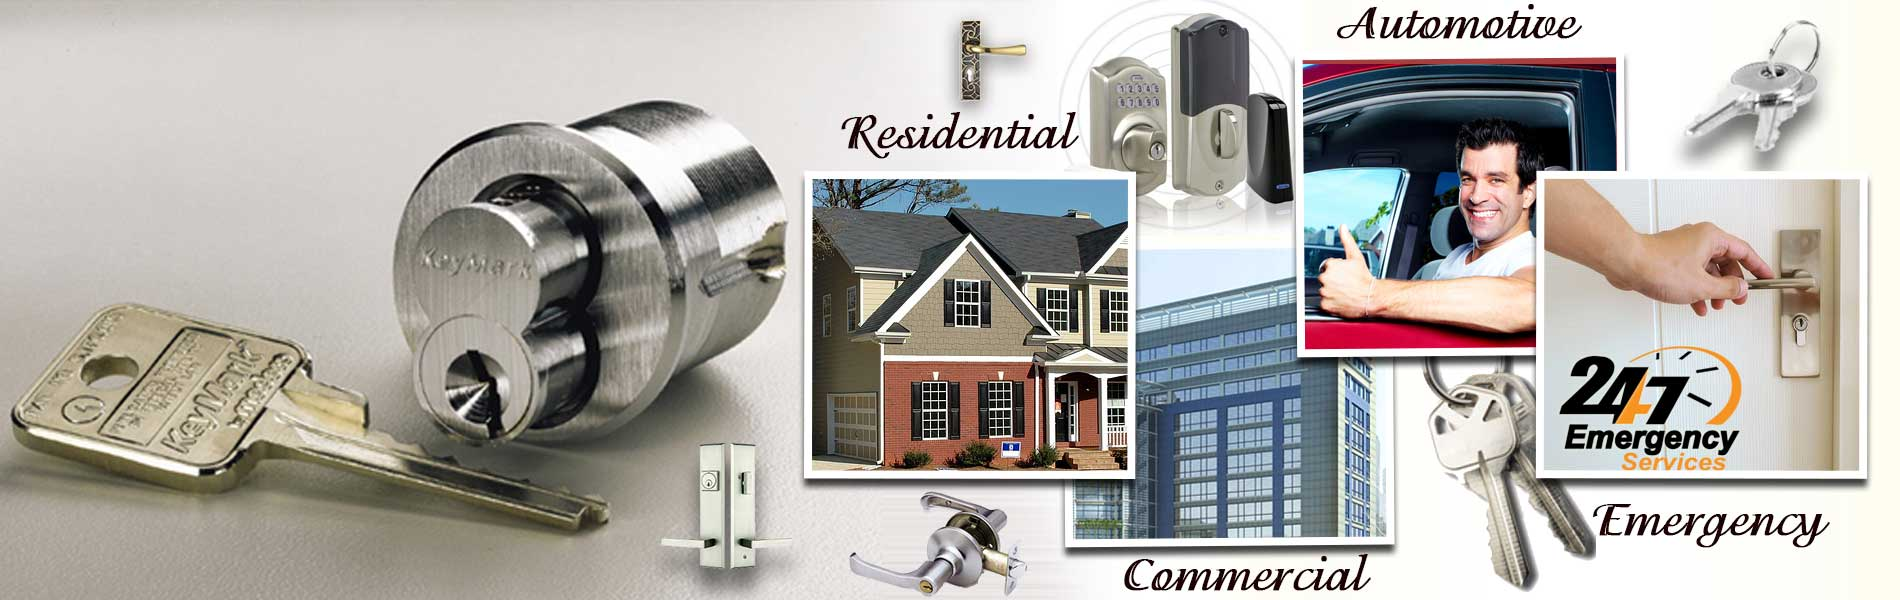 Town Center Locksmith Shop Memphis, TN 901-592-5148